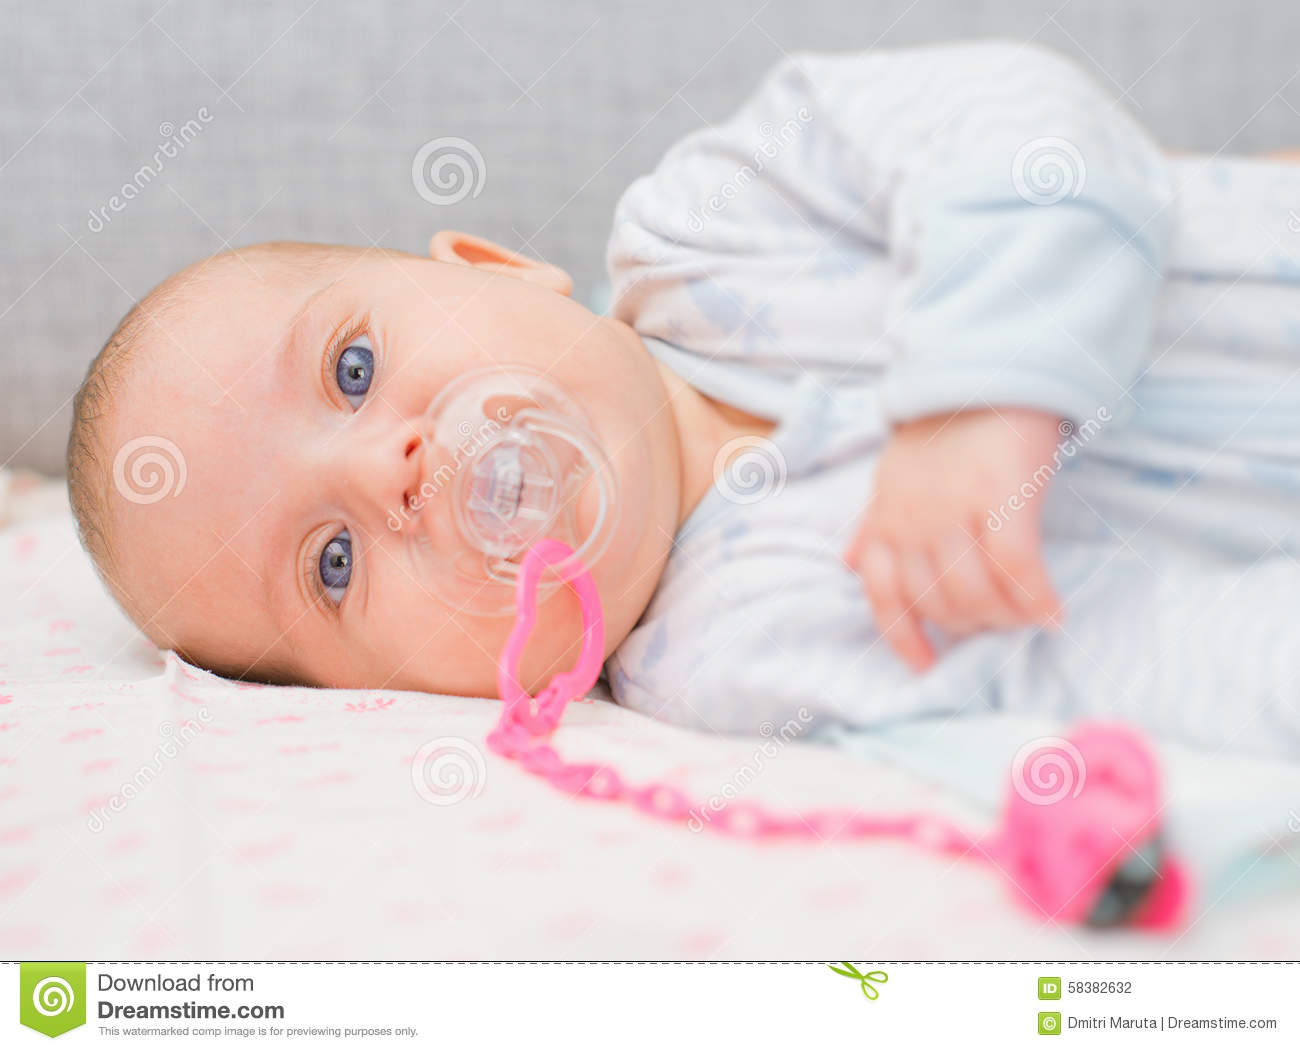 Newborn Babies For Dummies Newborn Little Baby With Dummy Stock Photo Image Of